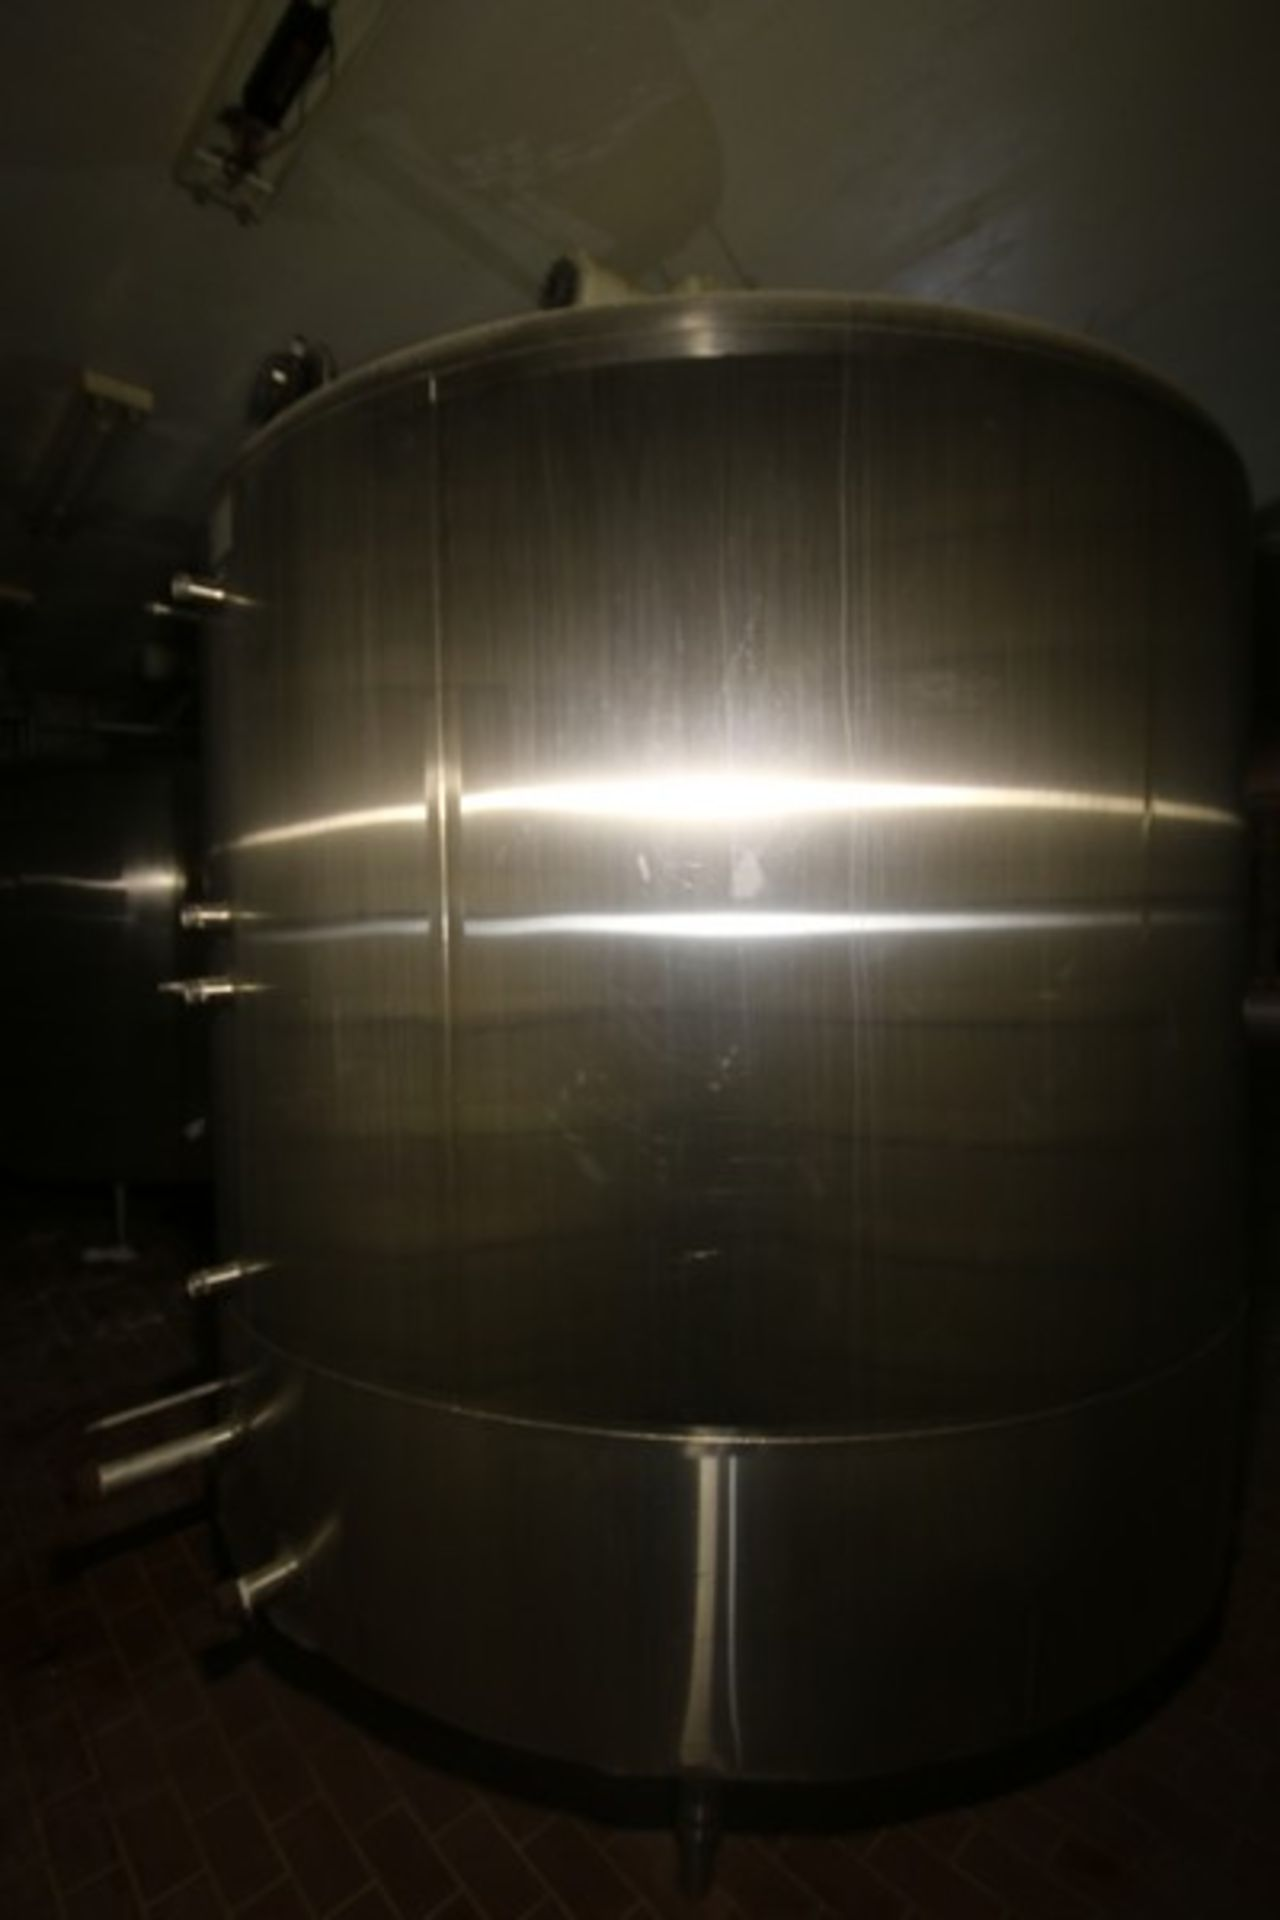 "Mueller Aprox. 2,000 Gal. S/S Processor, Processor Dims.: Aprox. 8' Diameter x 62"" Straight Side - Image 4 of 10"